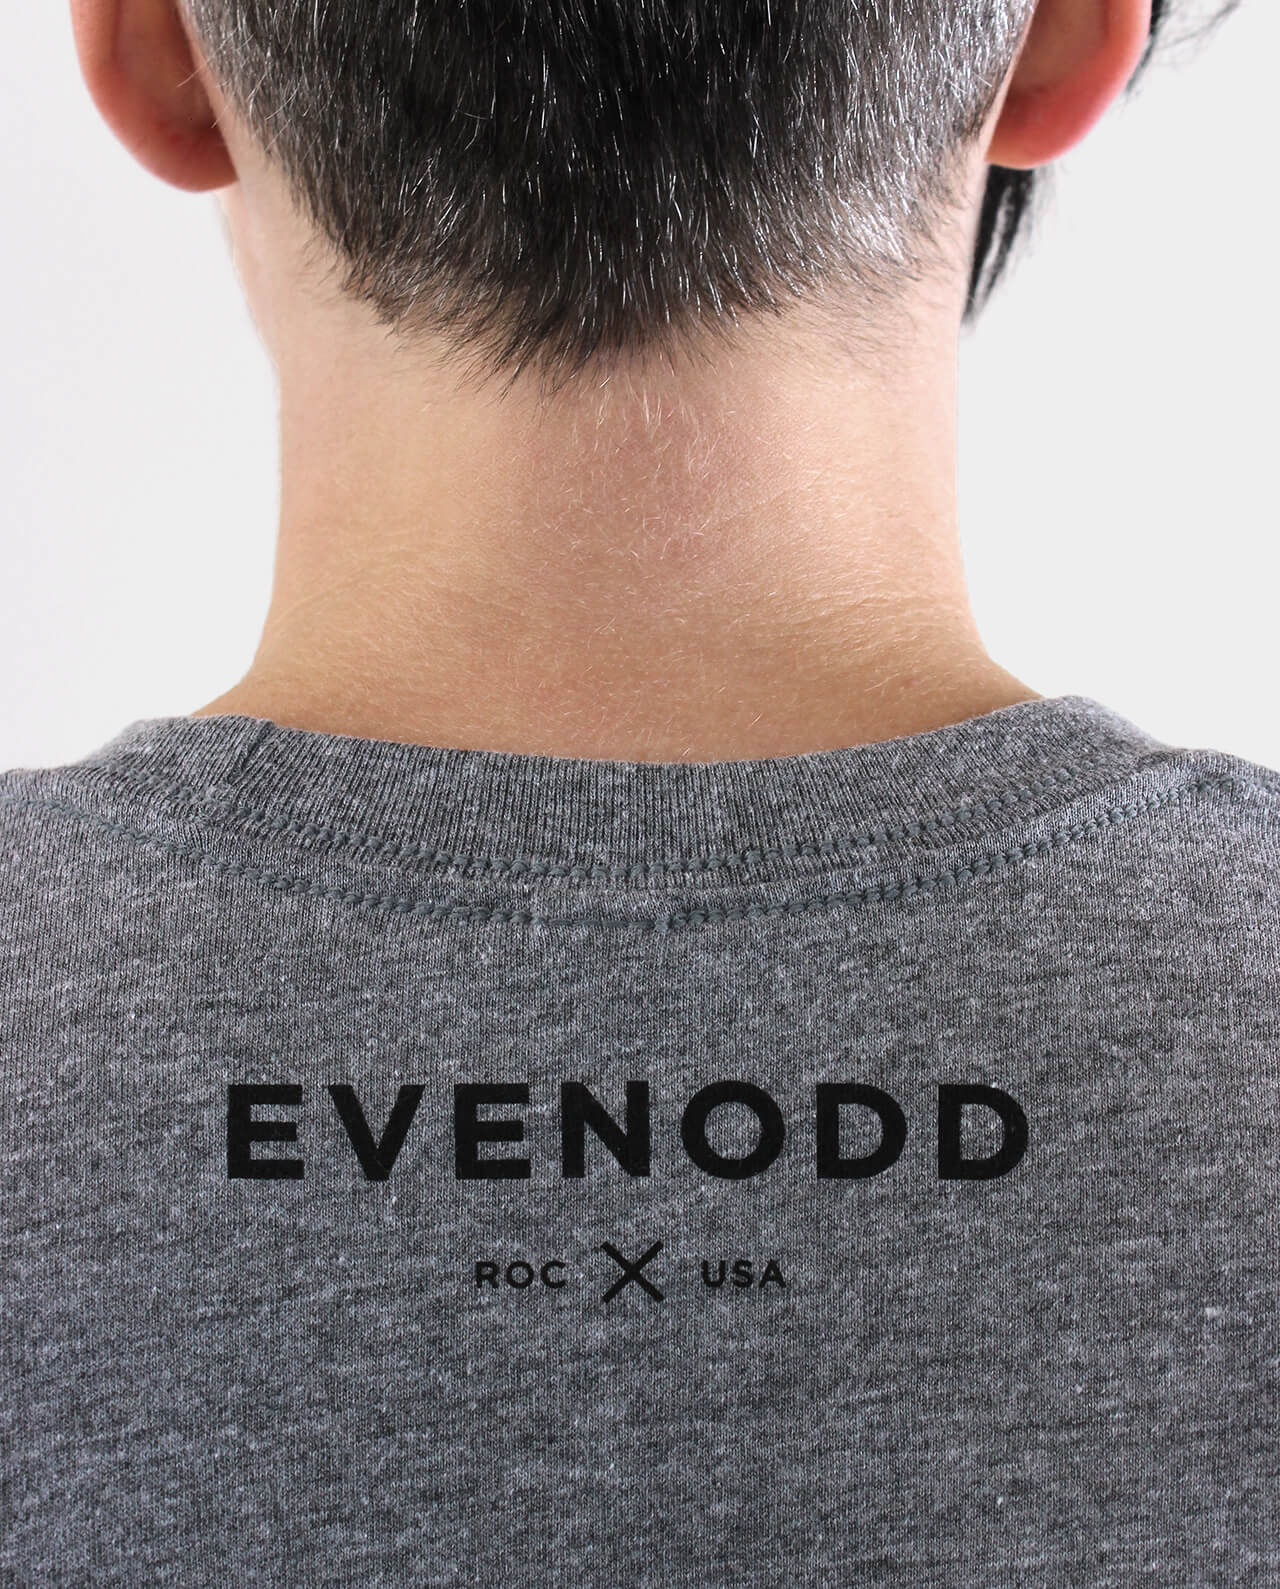 EvenOdd T-Shirt Back